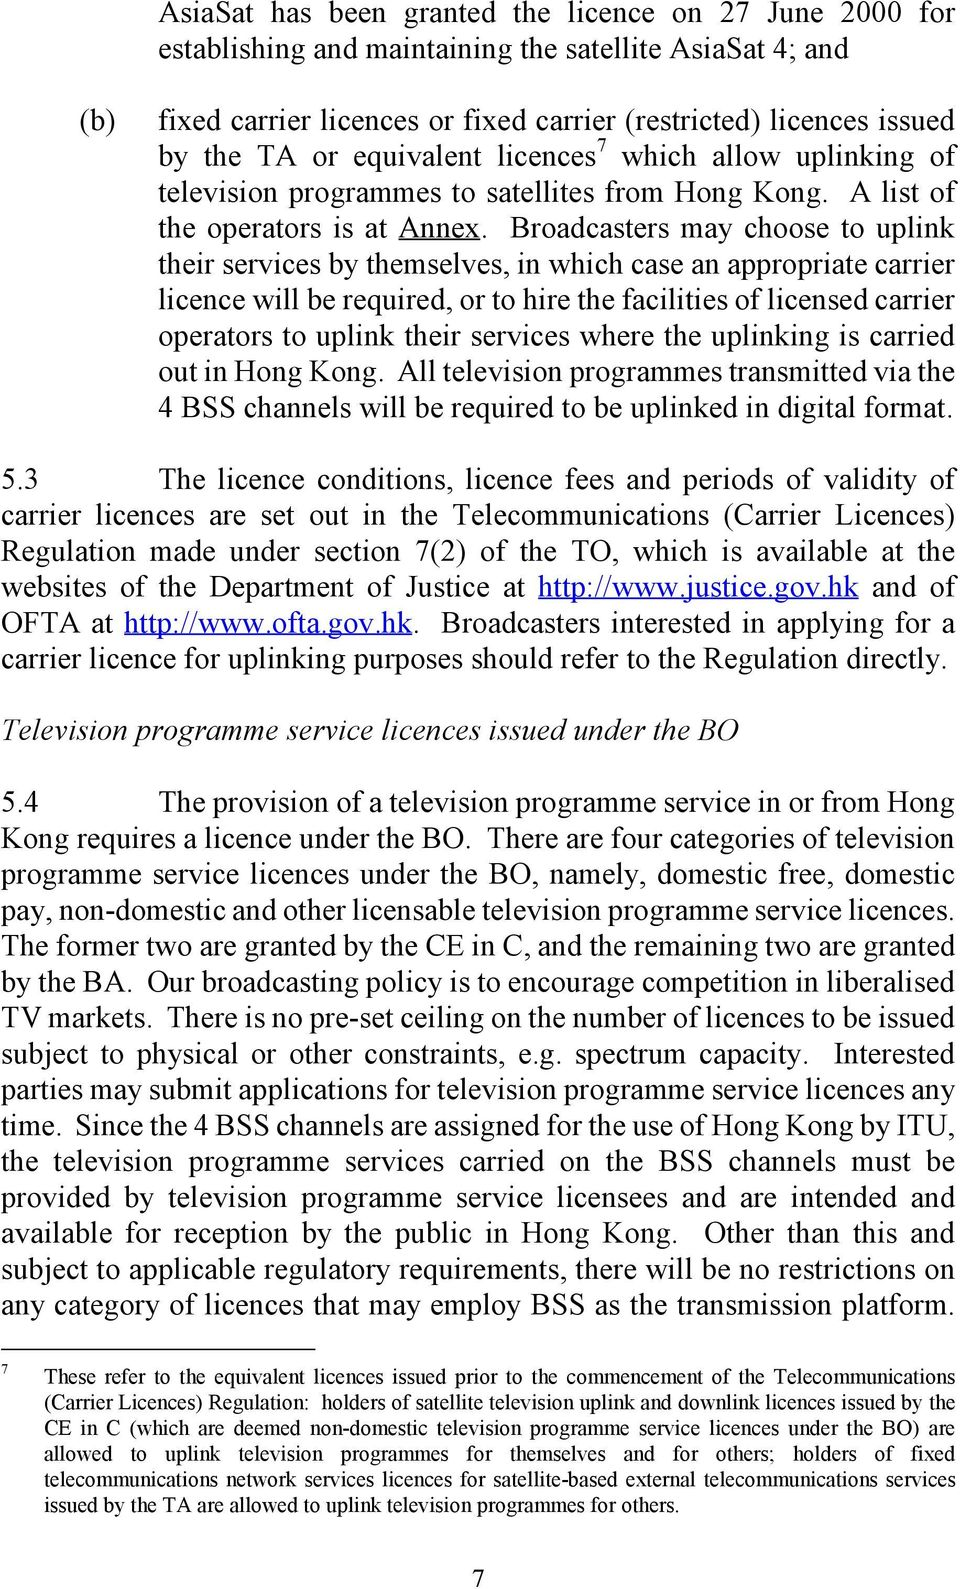 Broadcasters may choose to uplink their services by themselves, in which case an appropriate carrier licence will be required, or to hire the facilities of licensed carrier operators to uplink their